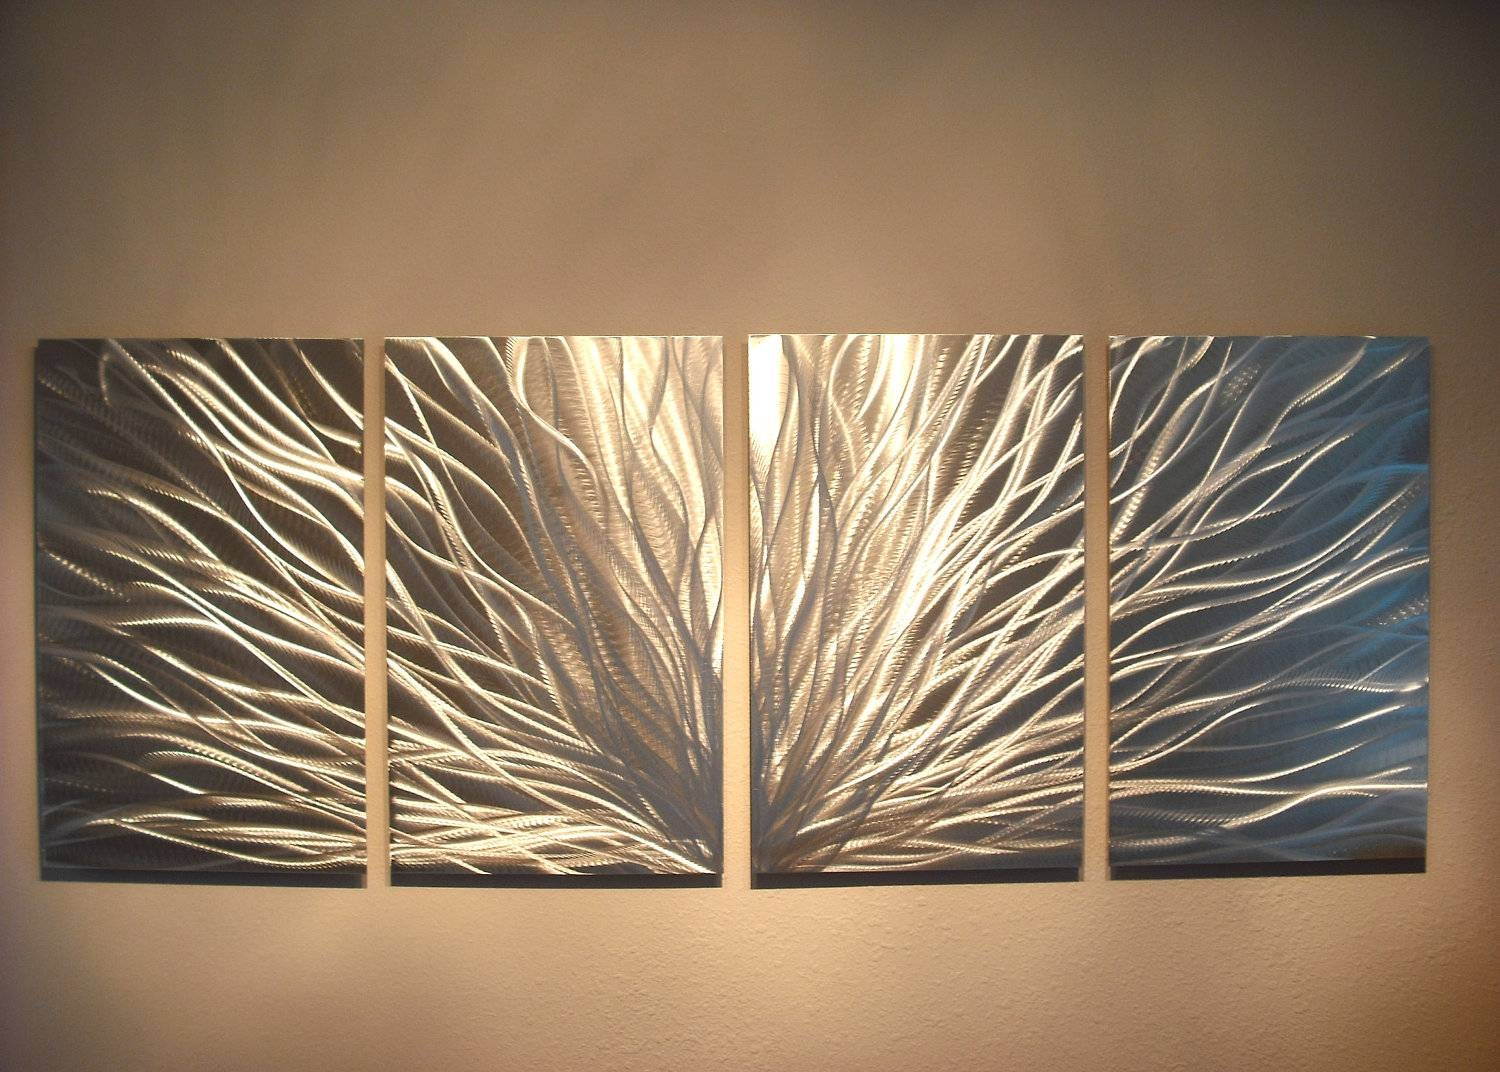 Radiance – Abstract Metal Wall Art Contemporary Modern Decor Throughout Most Current Modern Metal Wall Art (View 2 of 20)